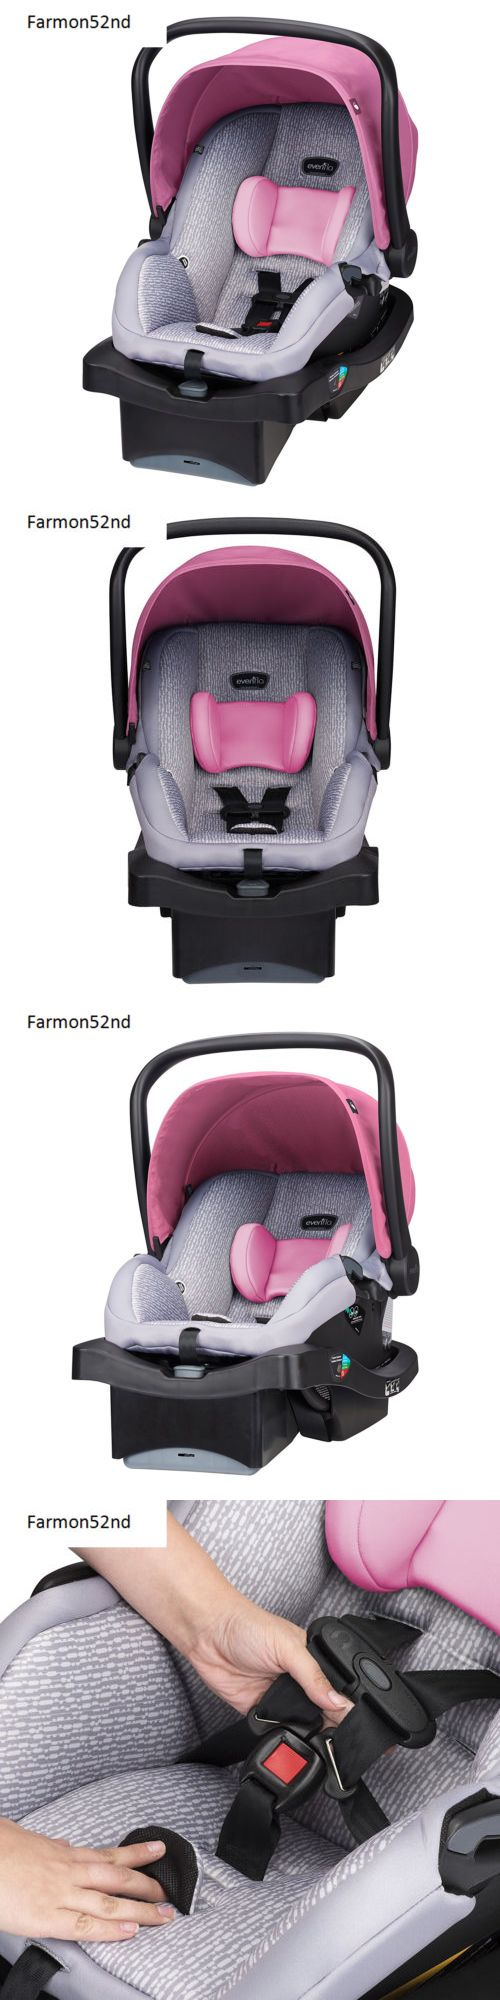 Other Car Safety Seats 2987: Infant Car Seat Baby Car Ride Azalea Color -> BUY IT NOW ONLY: $153.04 on eBay!